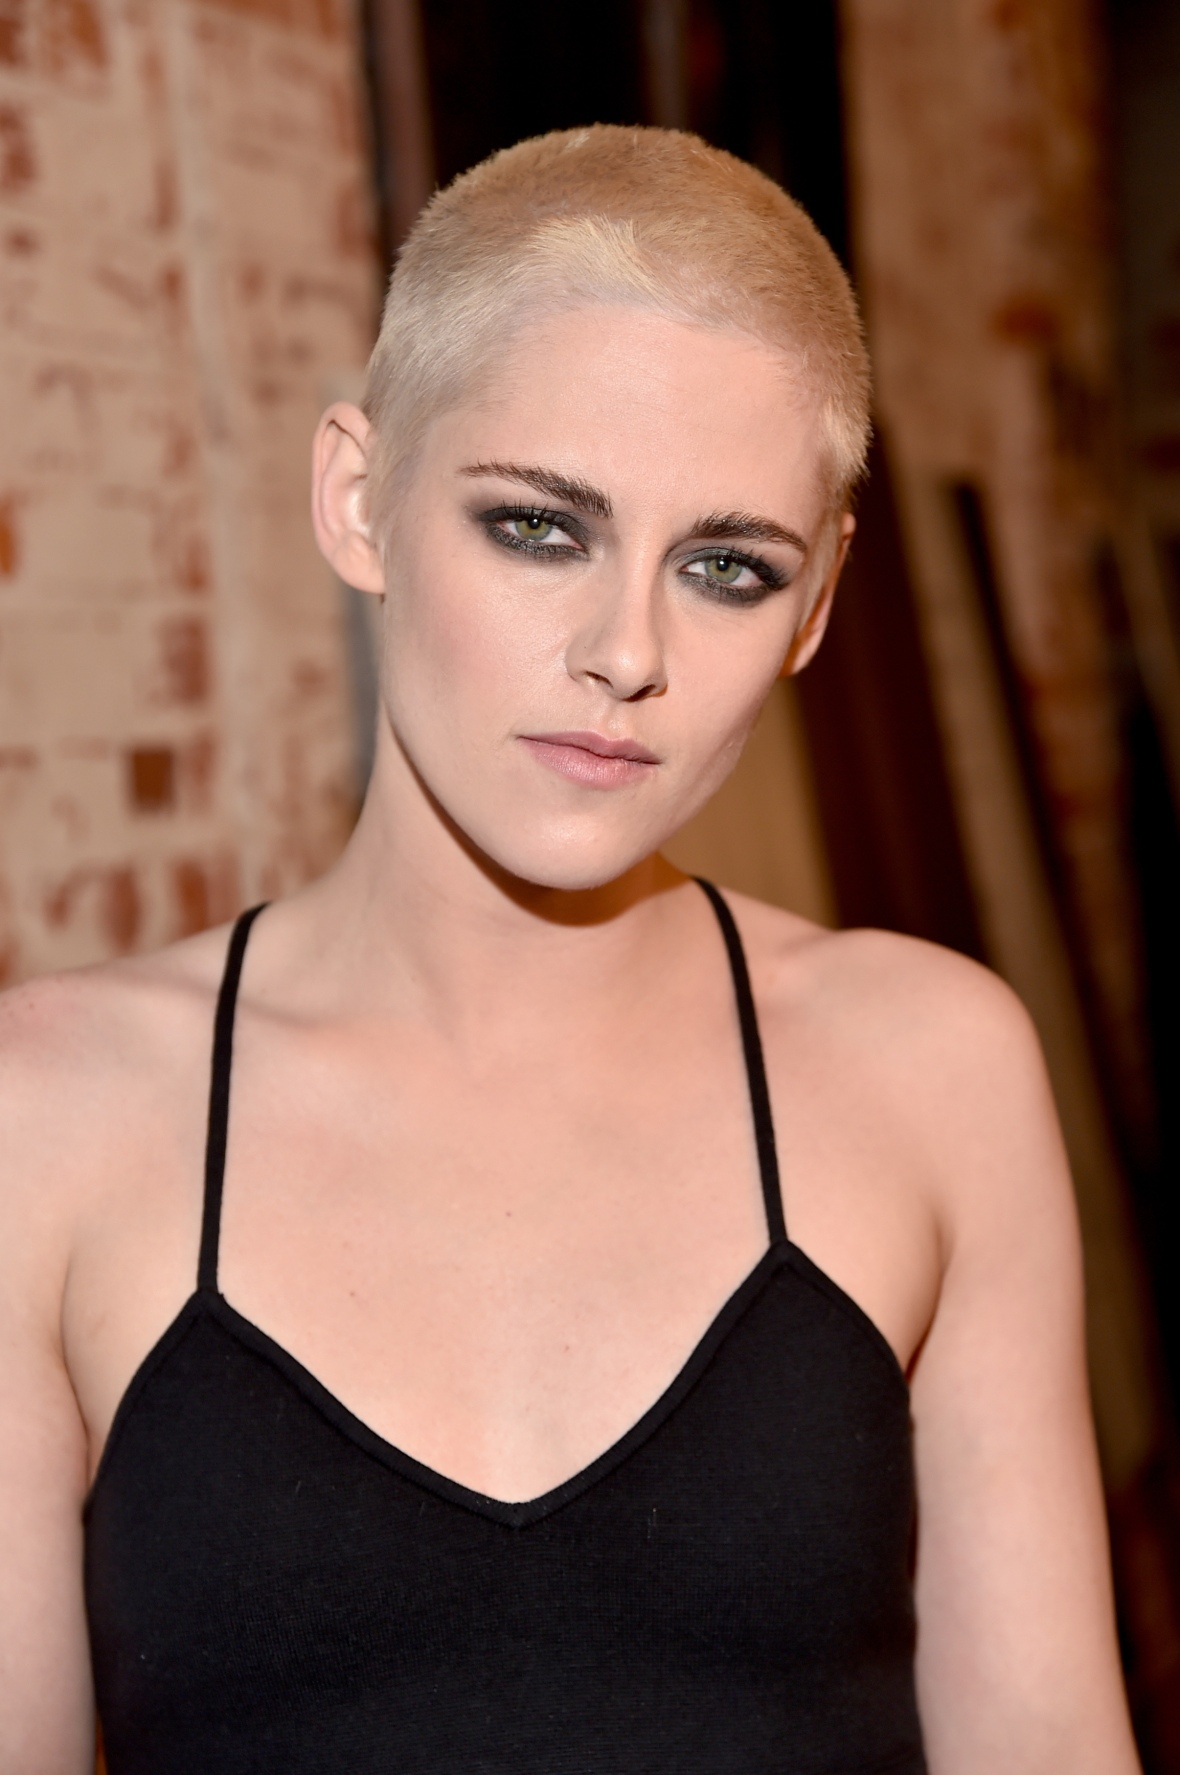 kristen stewart haircut 2 getty